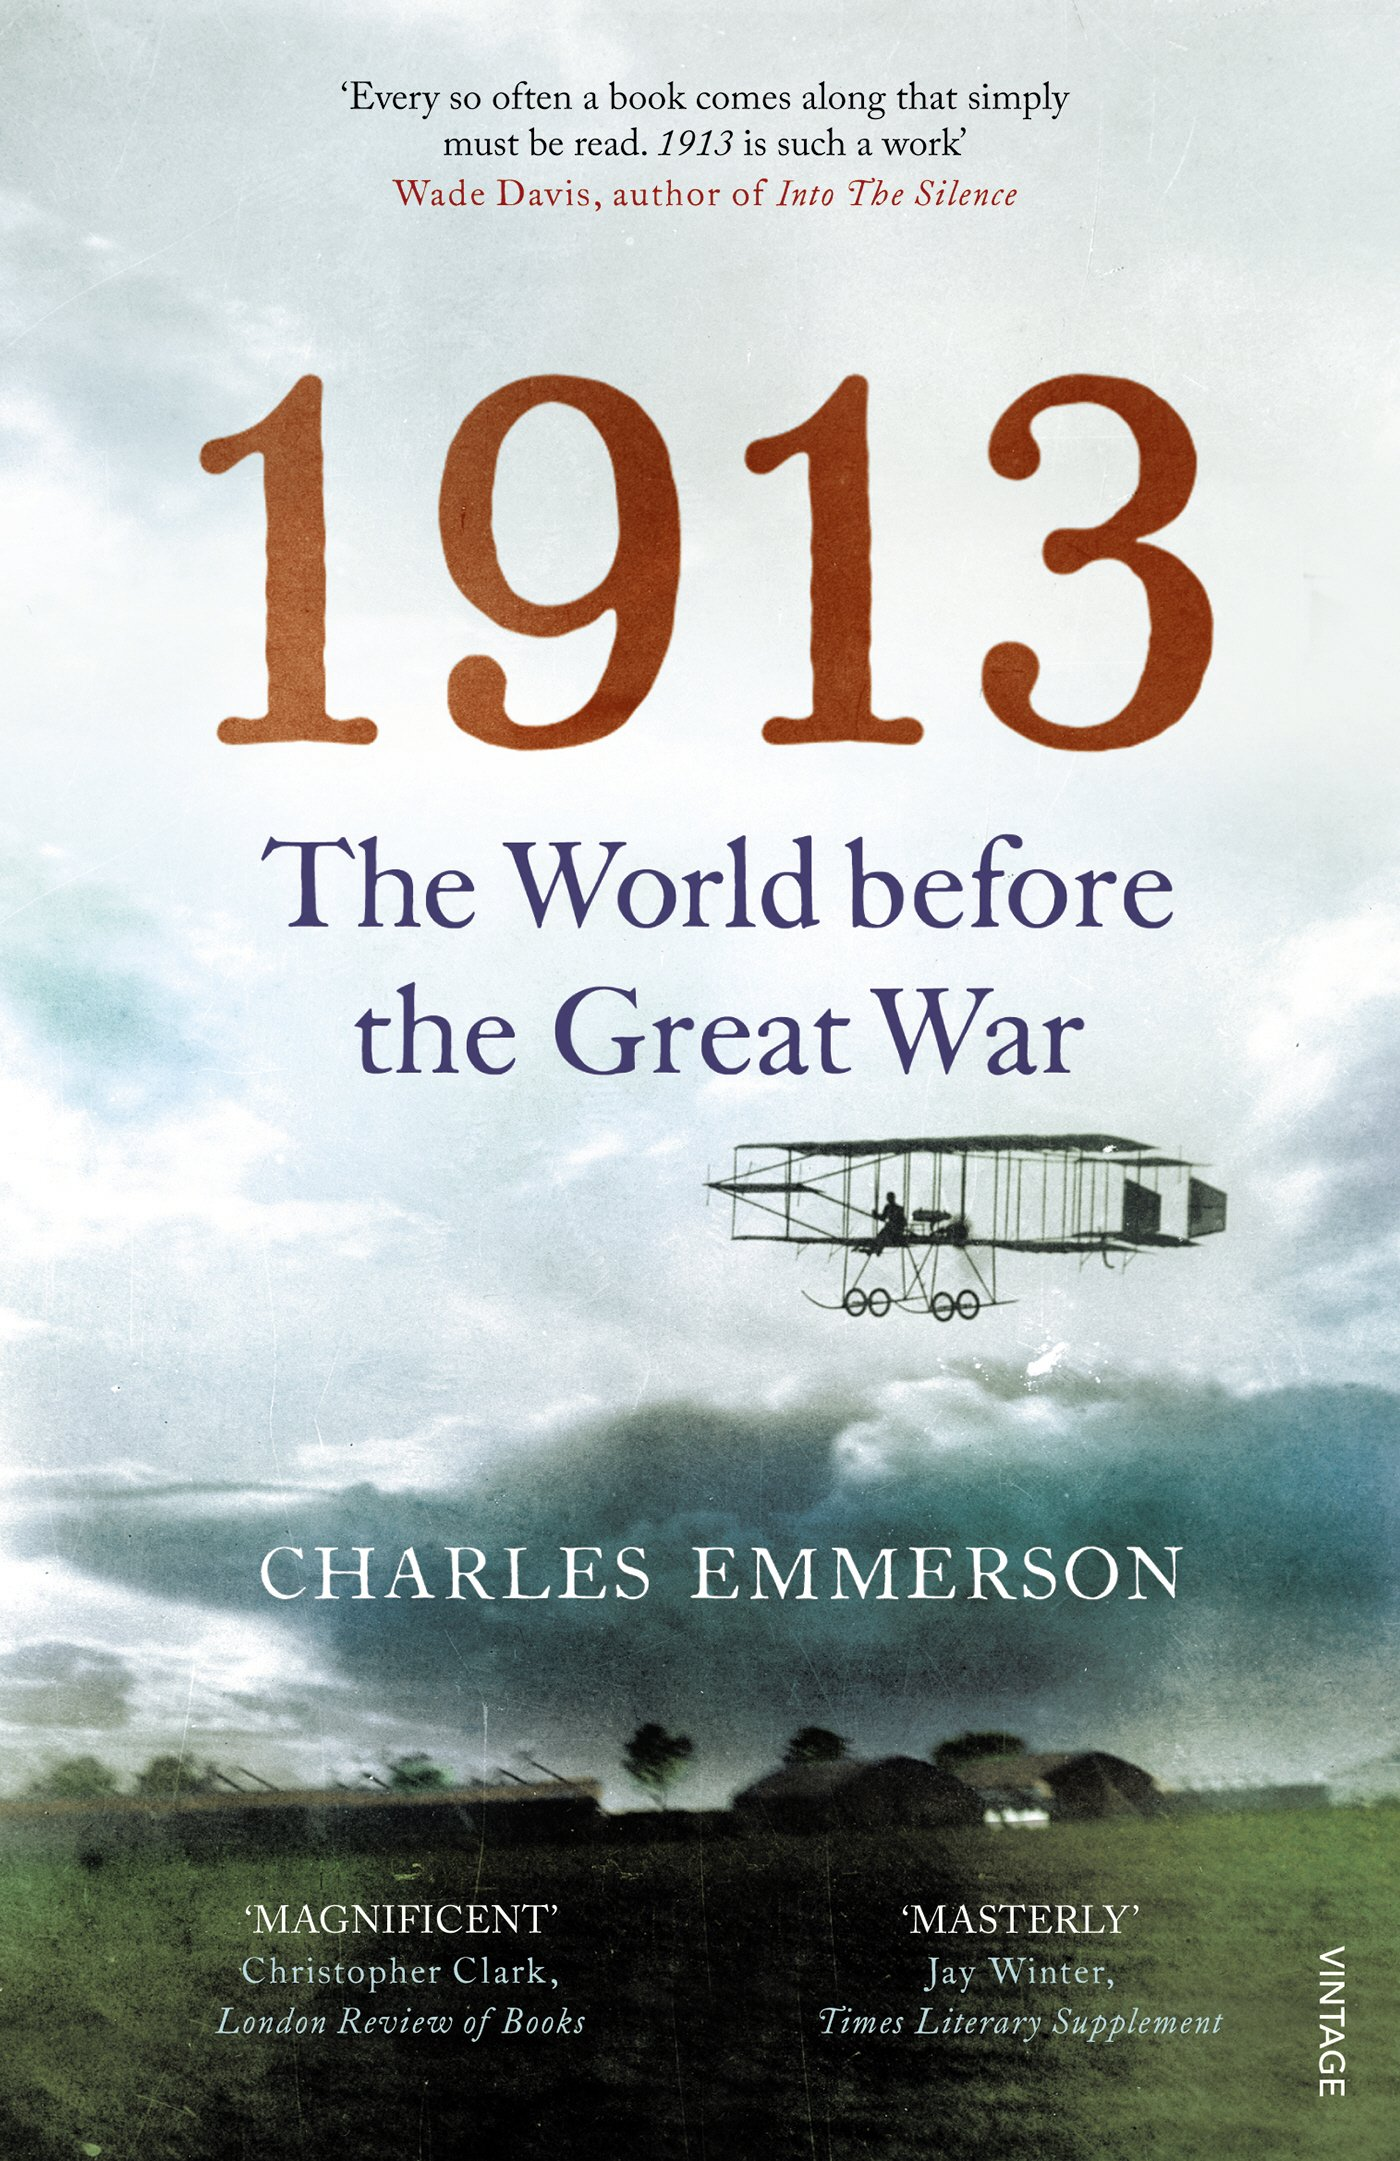 1913: The World before the Great War: Amazon.es: Charles Emmerson: Libros en idiomas extranjeros